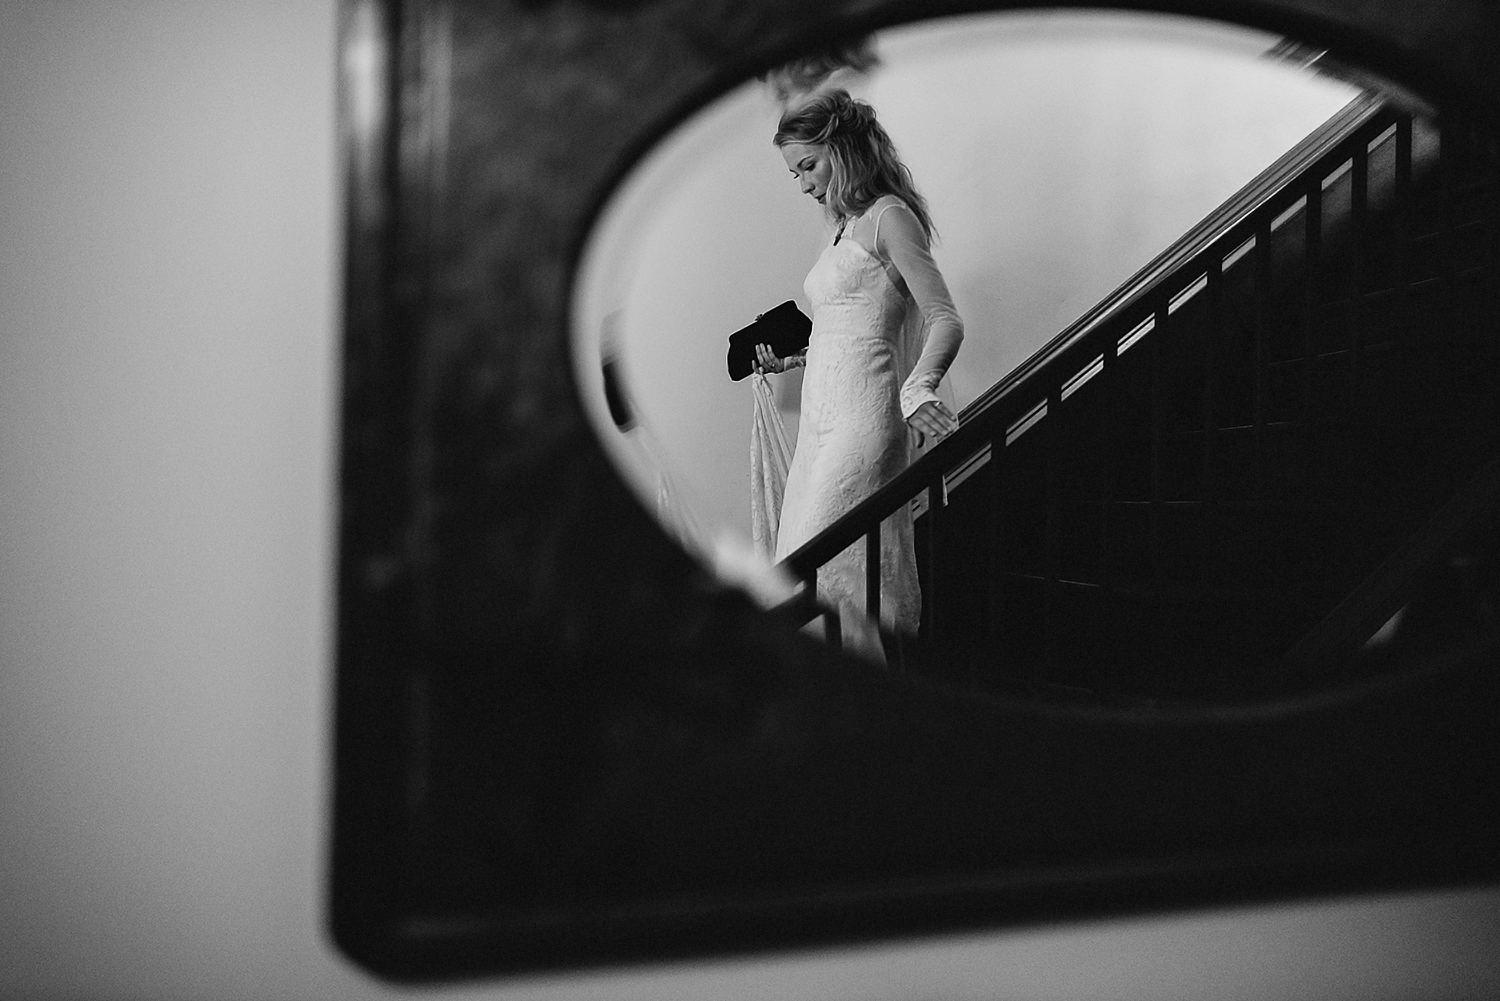 Best-Moody-Documentary-Wedding-Photography-Photojournalism-Vintage-Small-Town-Chapel-Wedding-Toronto-Ontario_Bride-exit-staircase.jpg